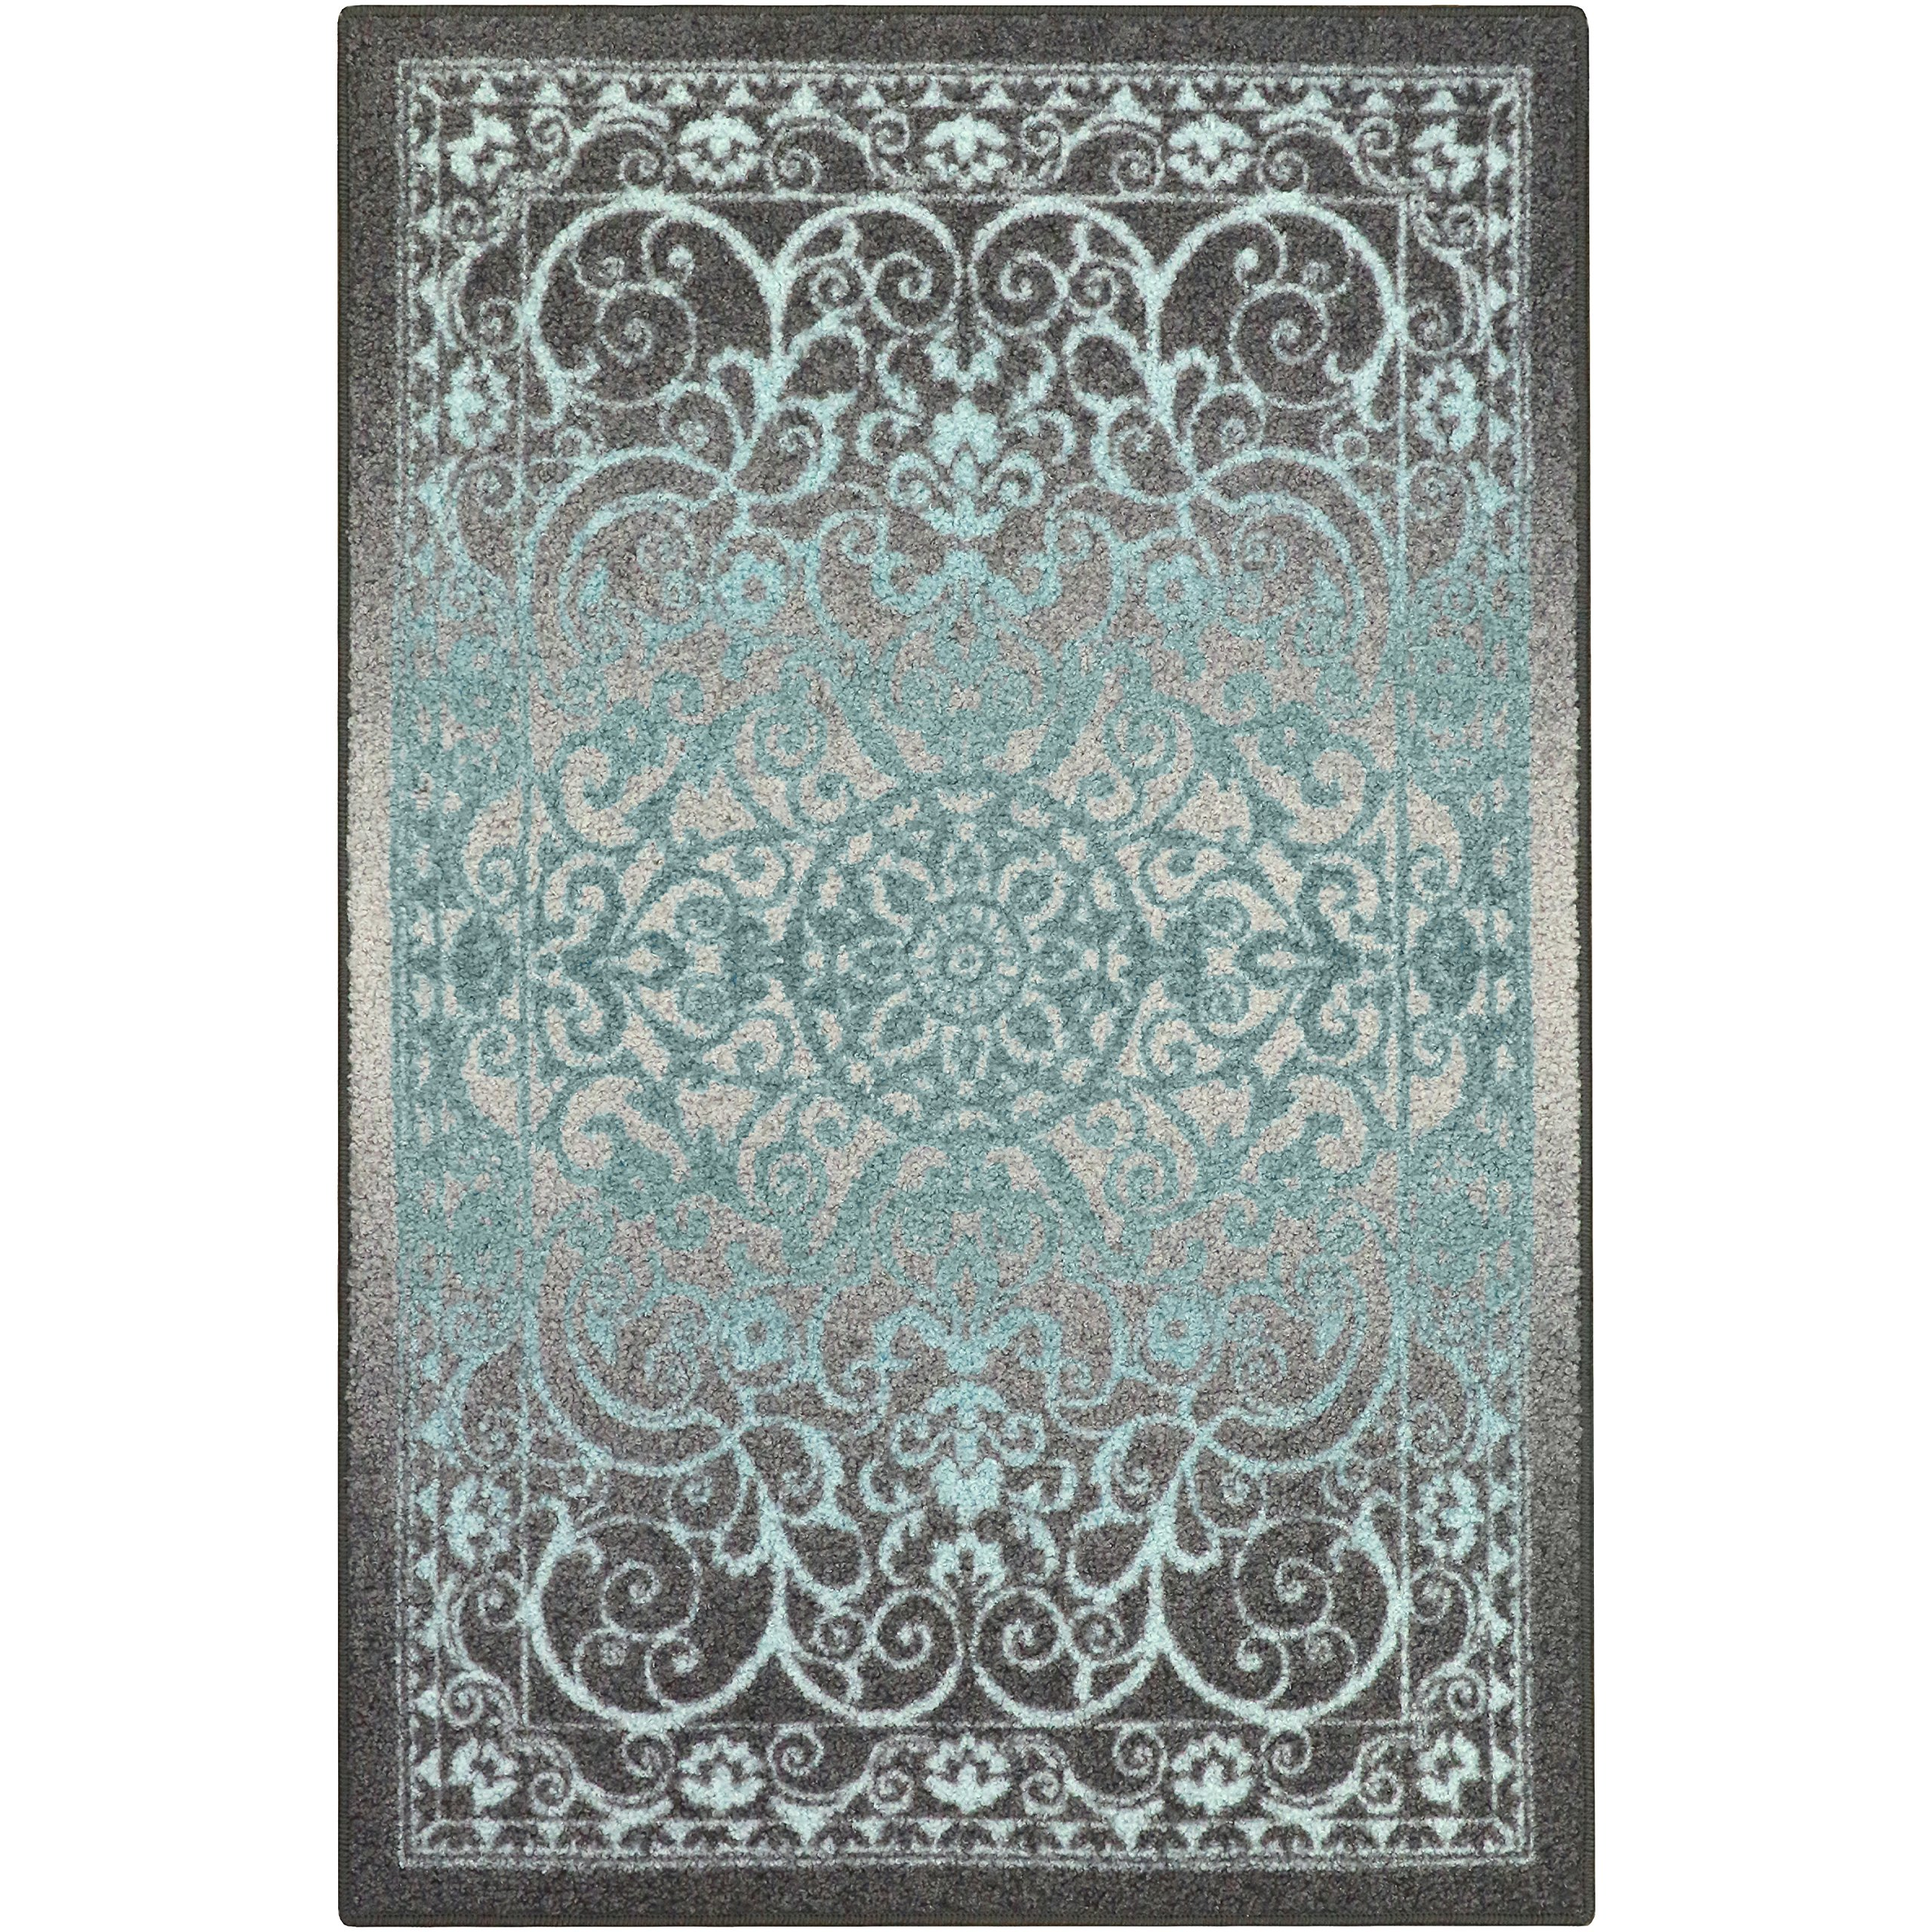 Get Quotations Maples Rugs Area Pelham 5 X 7 Non Slip Large Rug